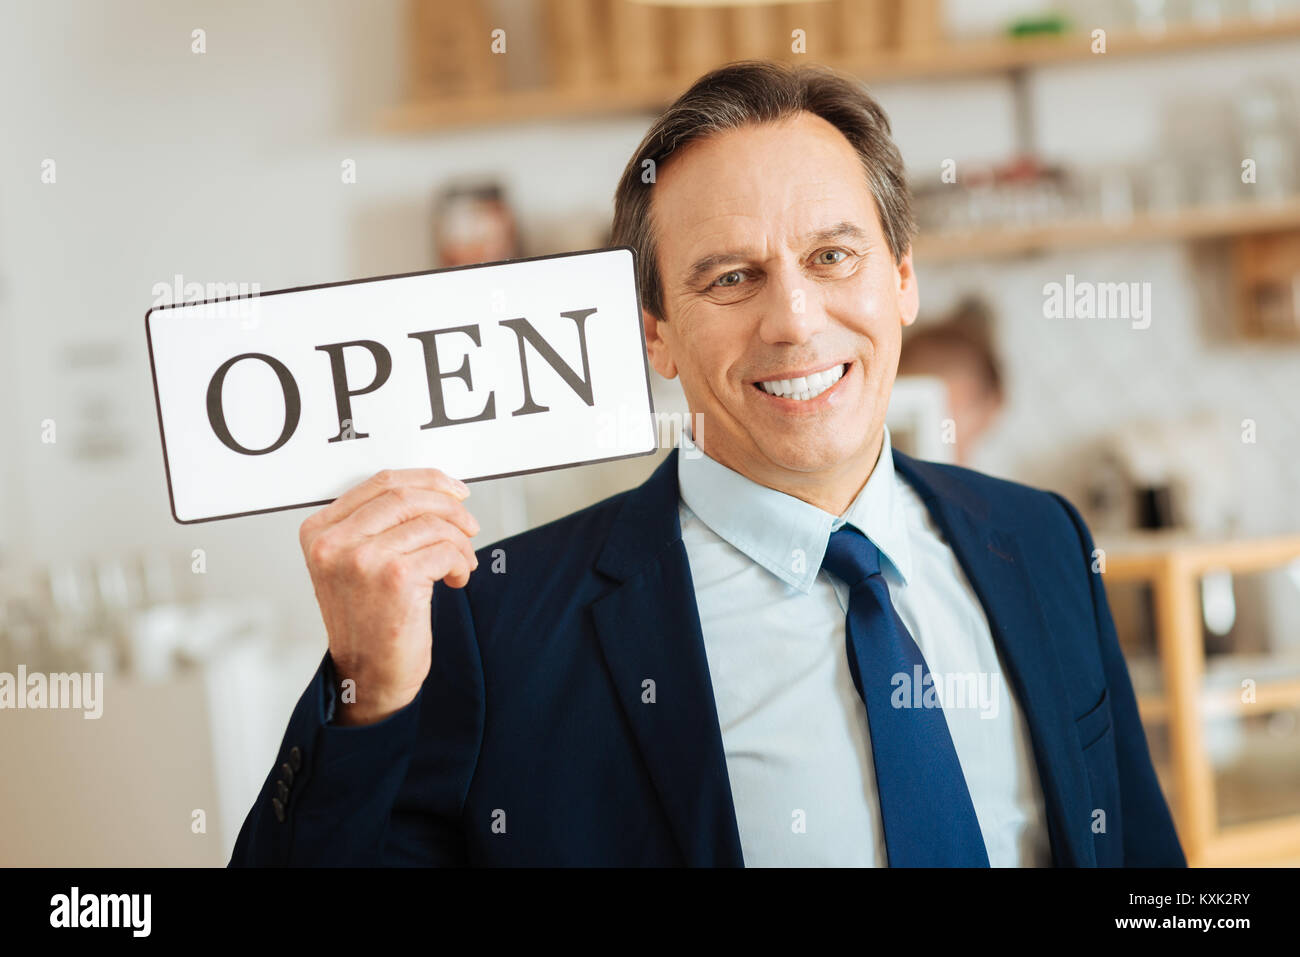 Satisfied pleasant man rejoicing and smiling. Stock Photo